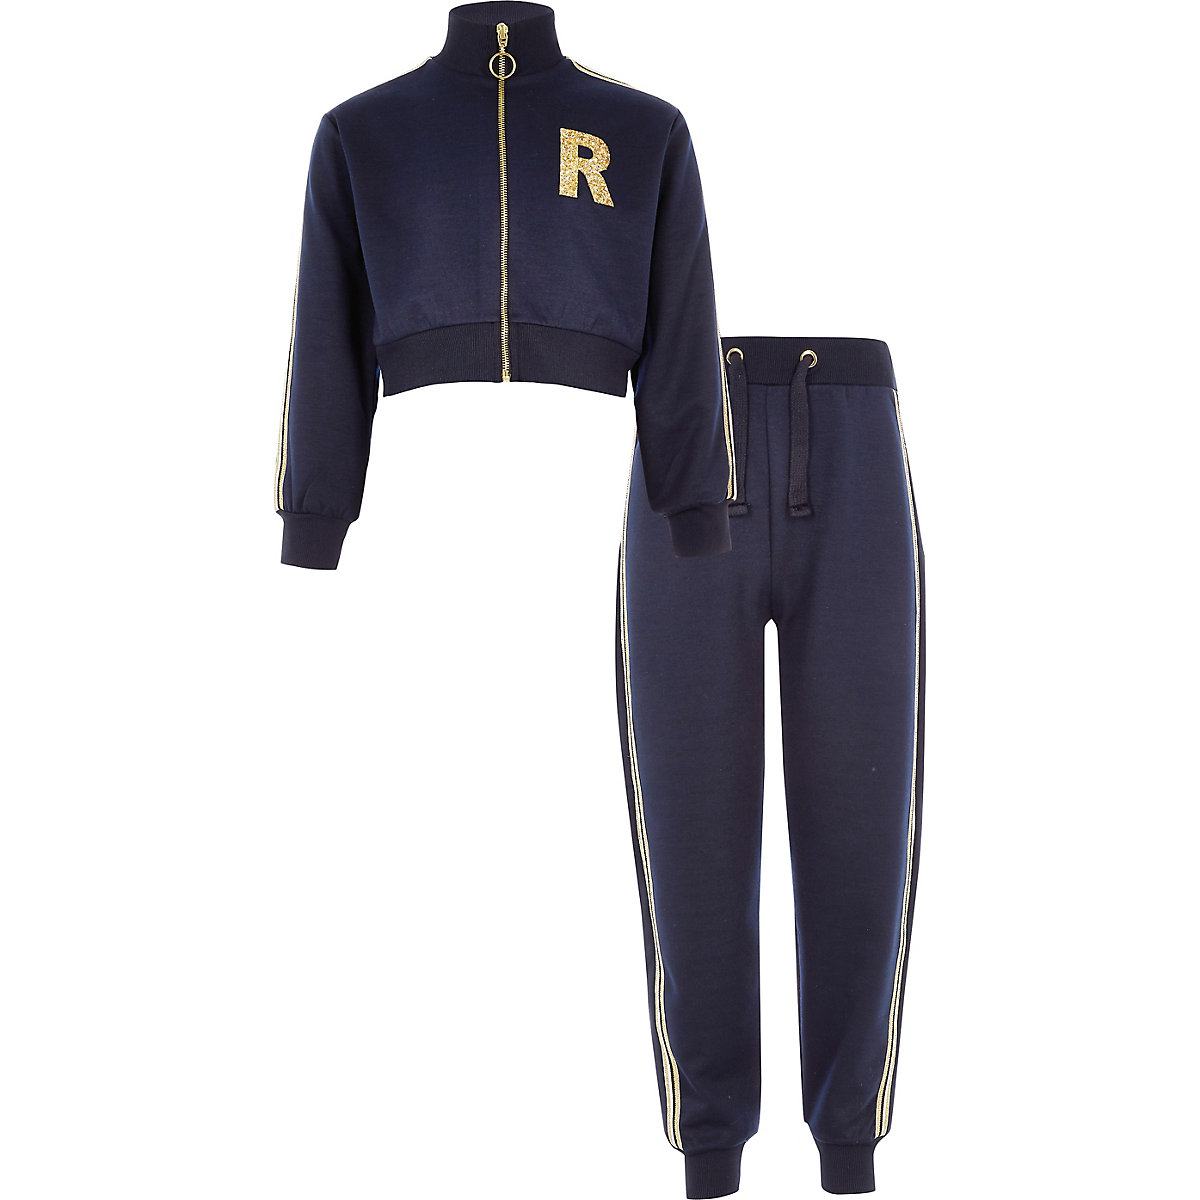 Girls navy 'R' glitter tracksuit outfit